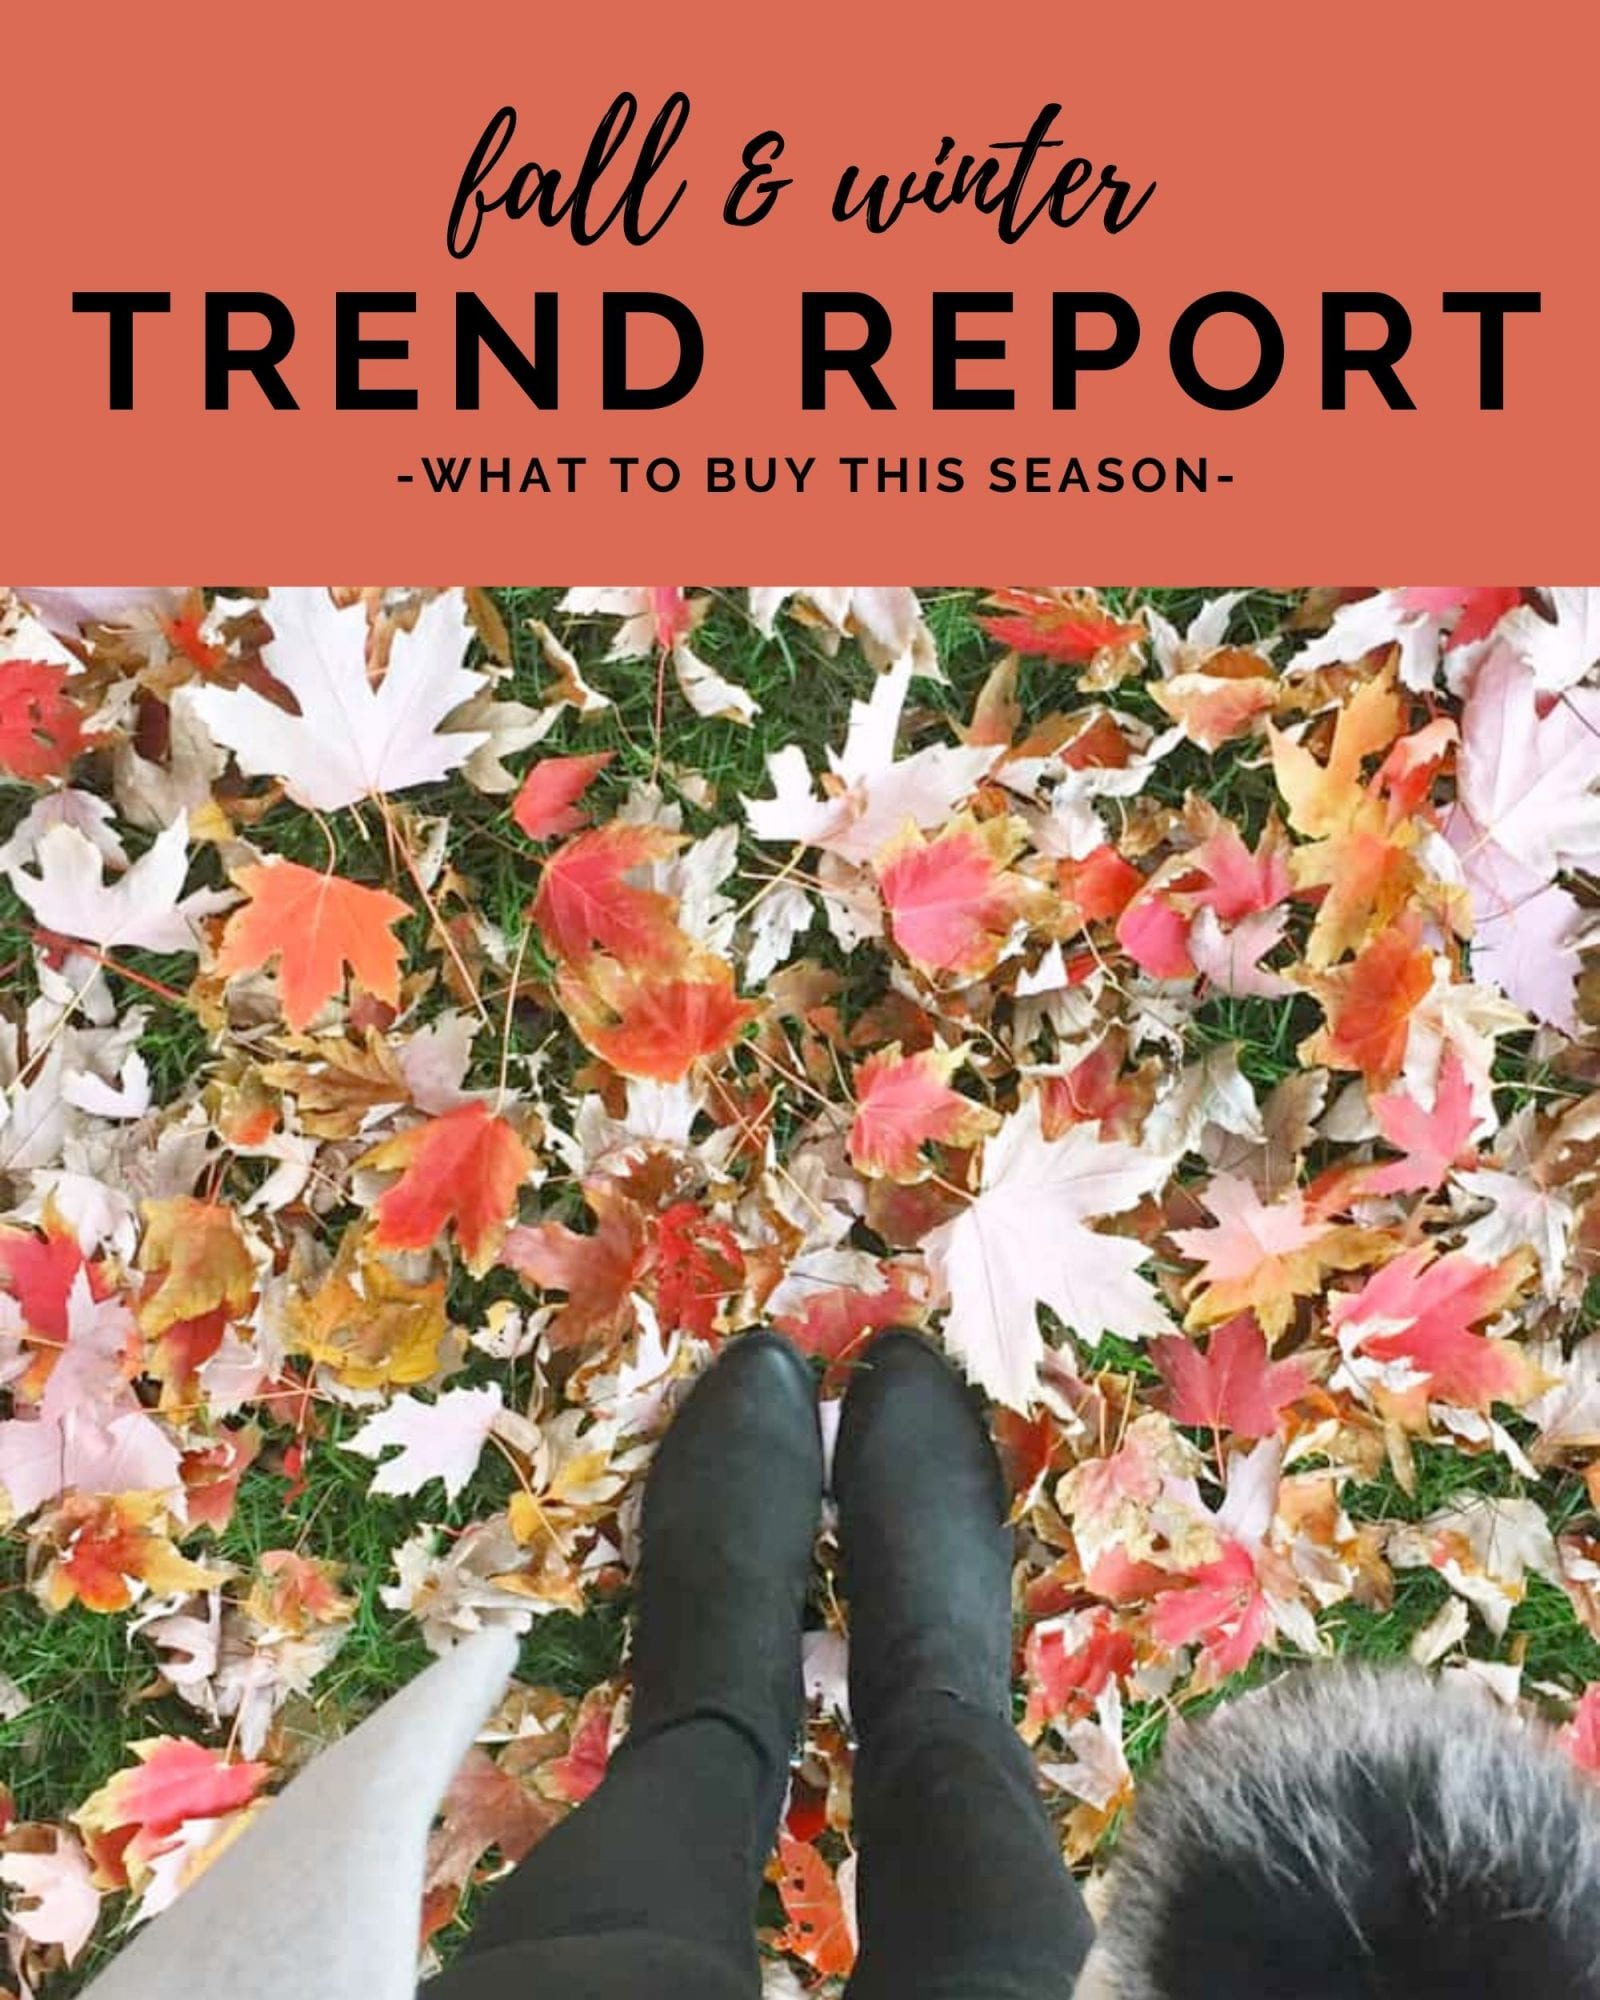 Fall & winter trend report - what to buy this season to up date your wardrobe